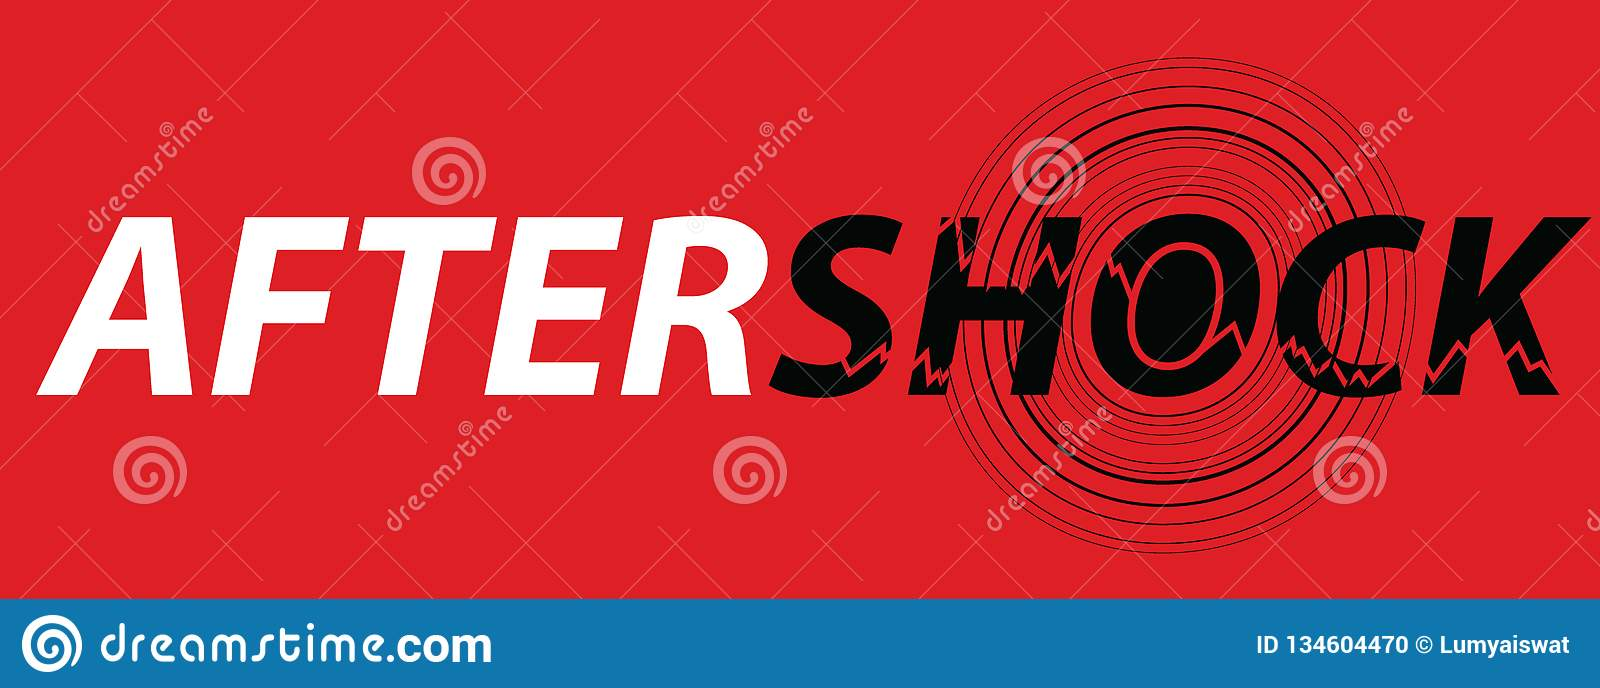 hight resolution of aftershock logo on red background